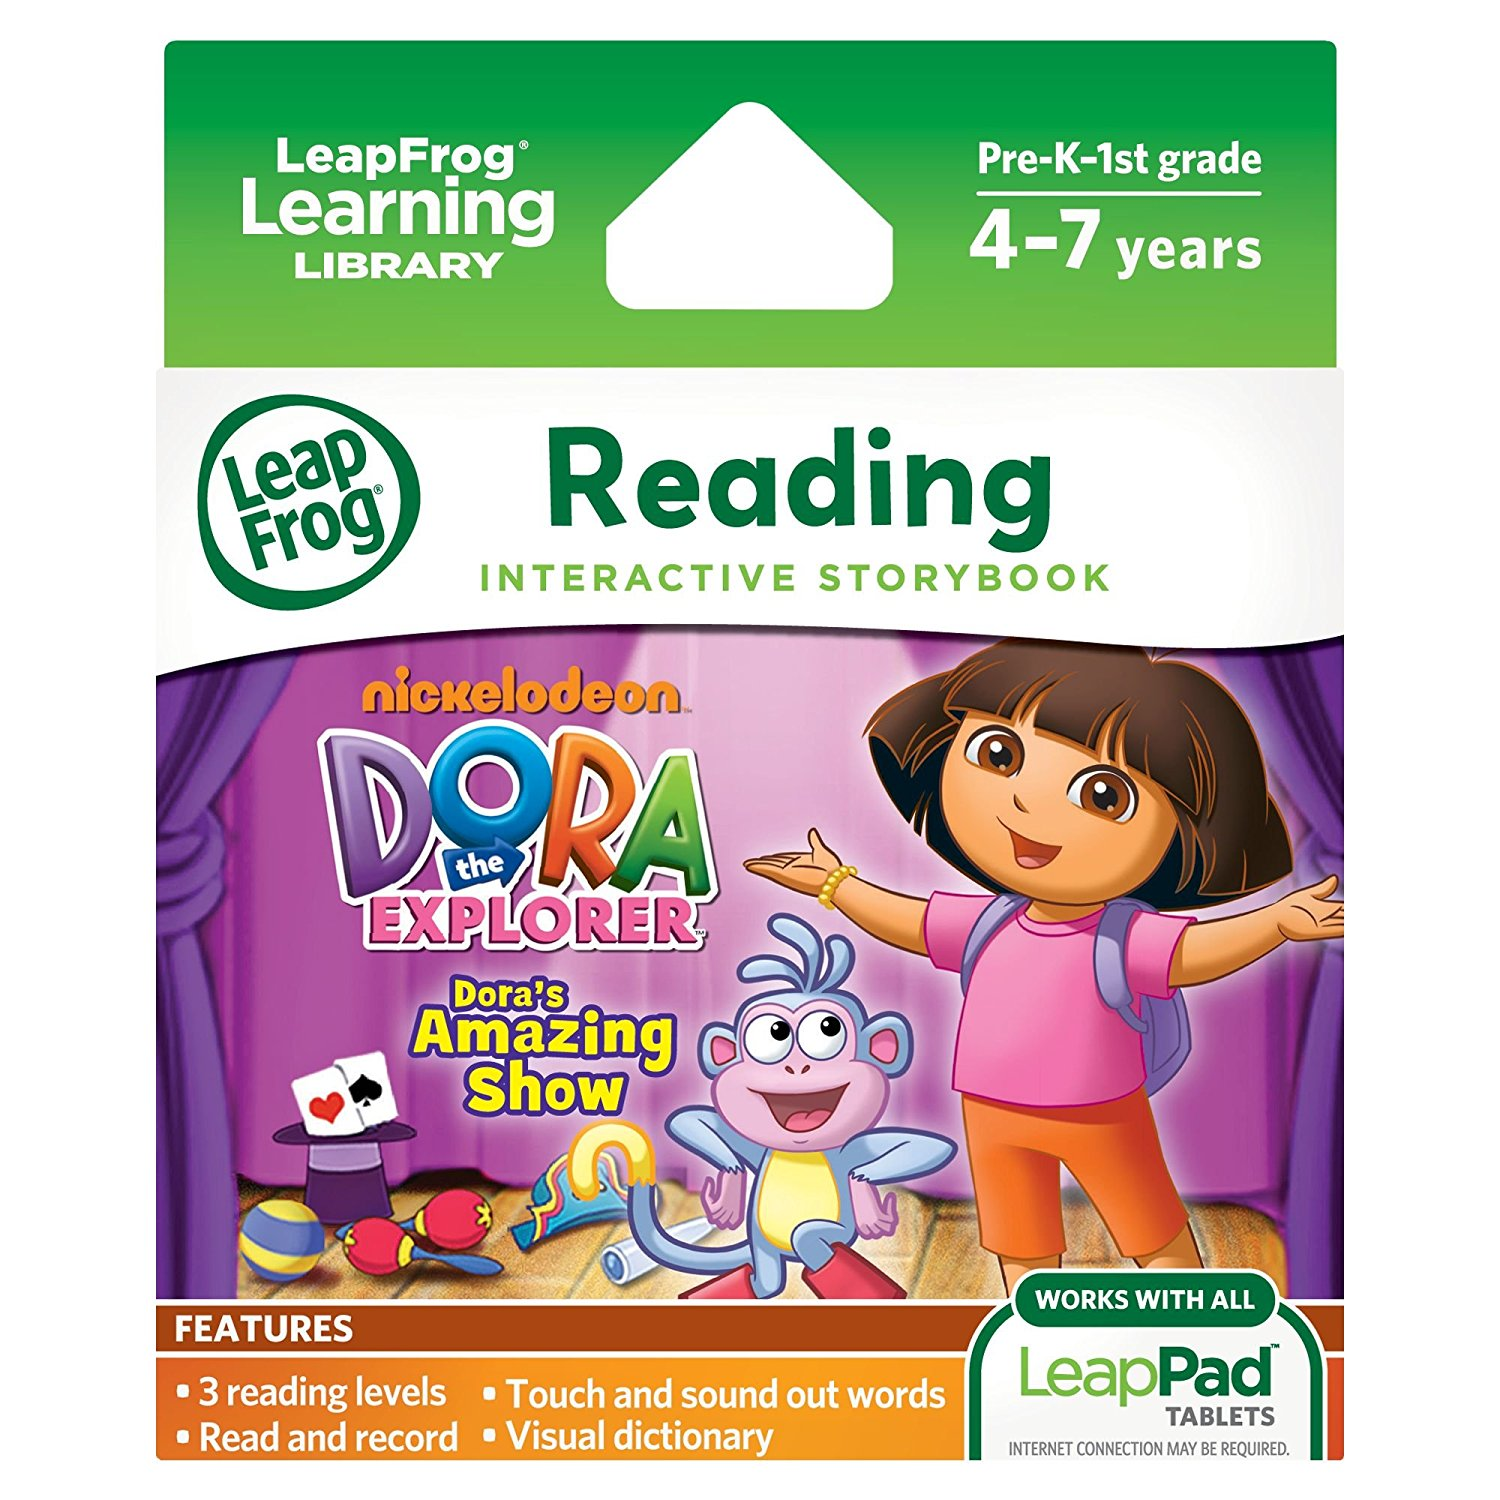 LeapPad Dora's Amazing Show Ultra eBook (works with all LeapPad tablets)The story is... by